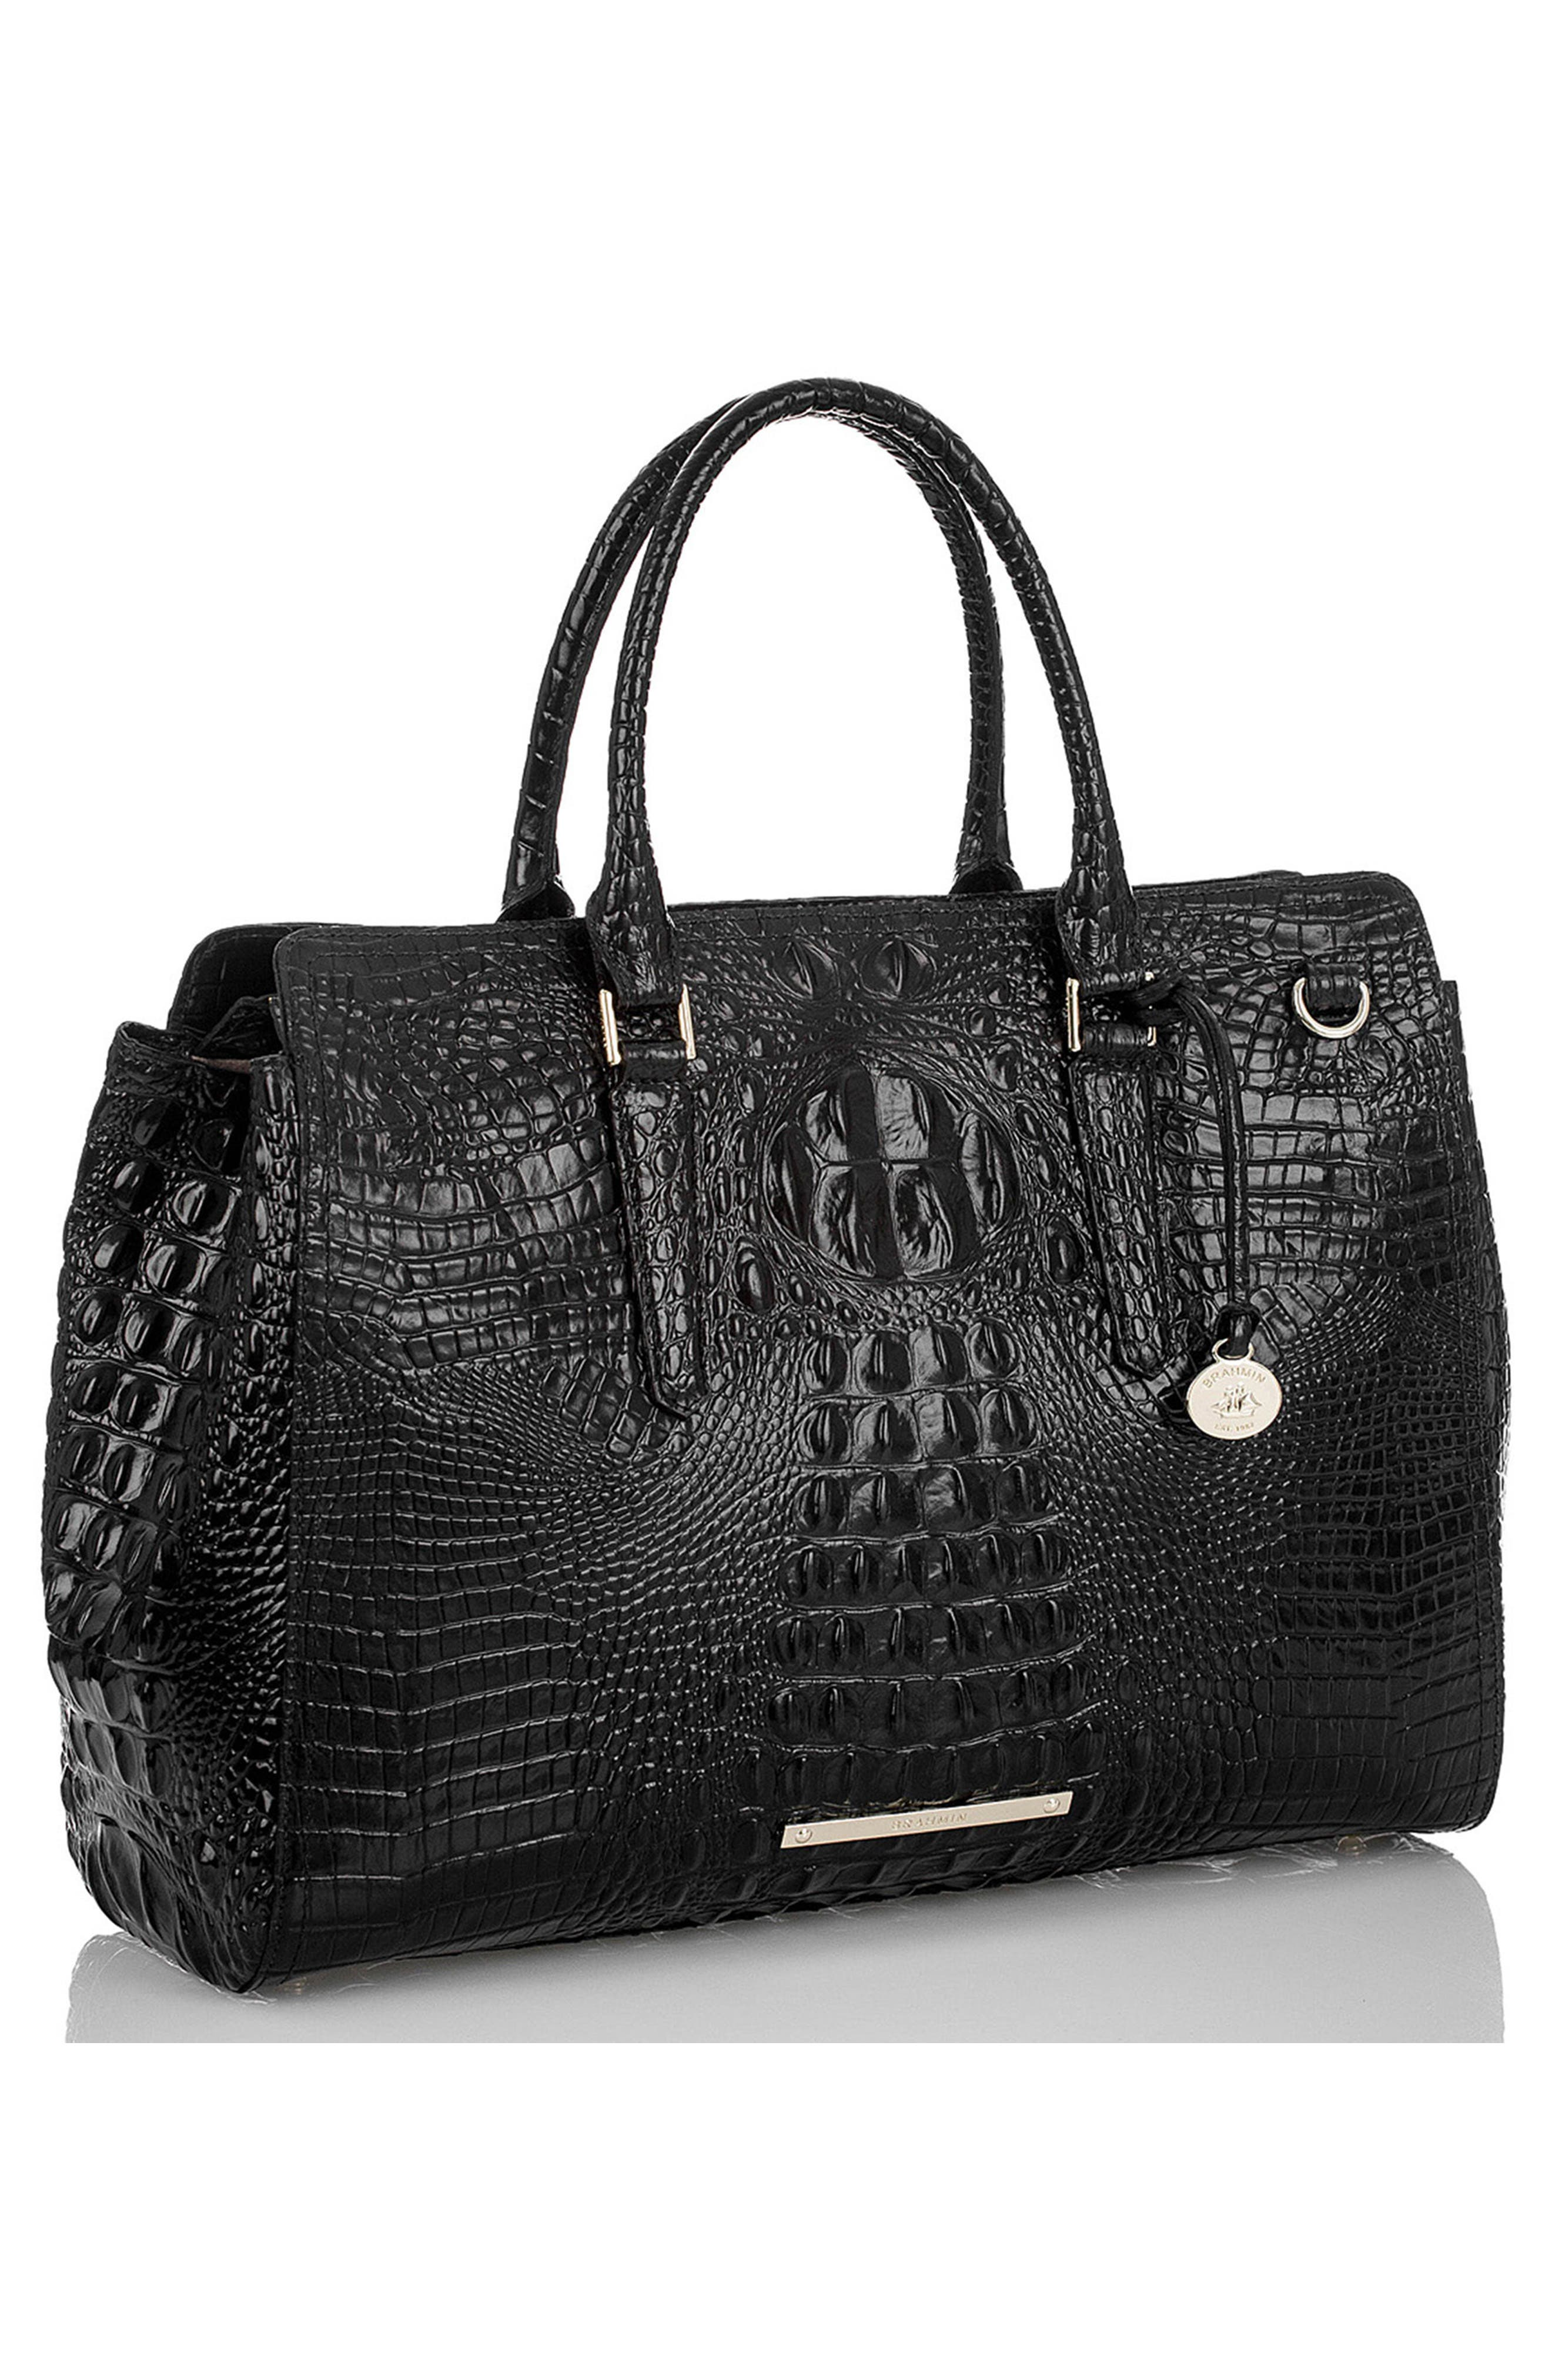 Finley Croc Embossed Leather Tote,                             Alternate thumbnail 5, color,                             001